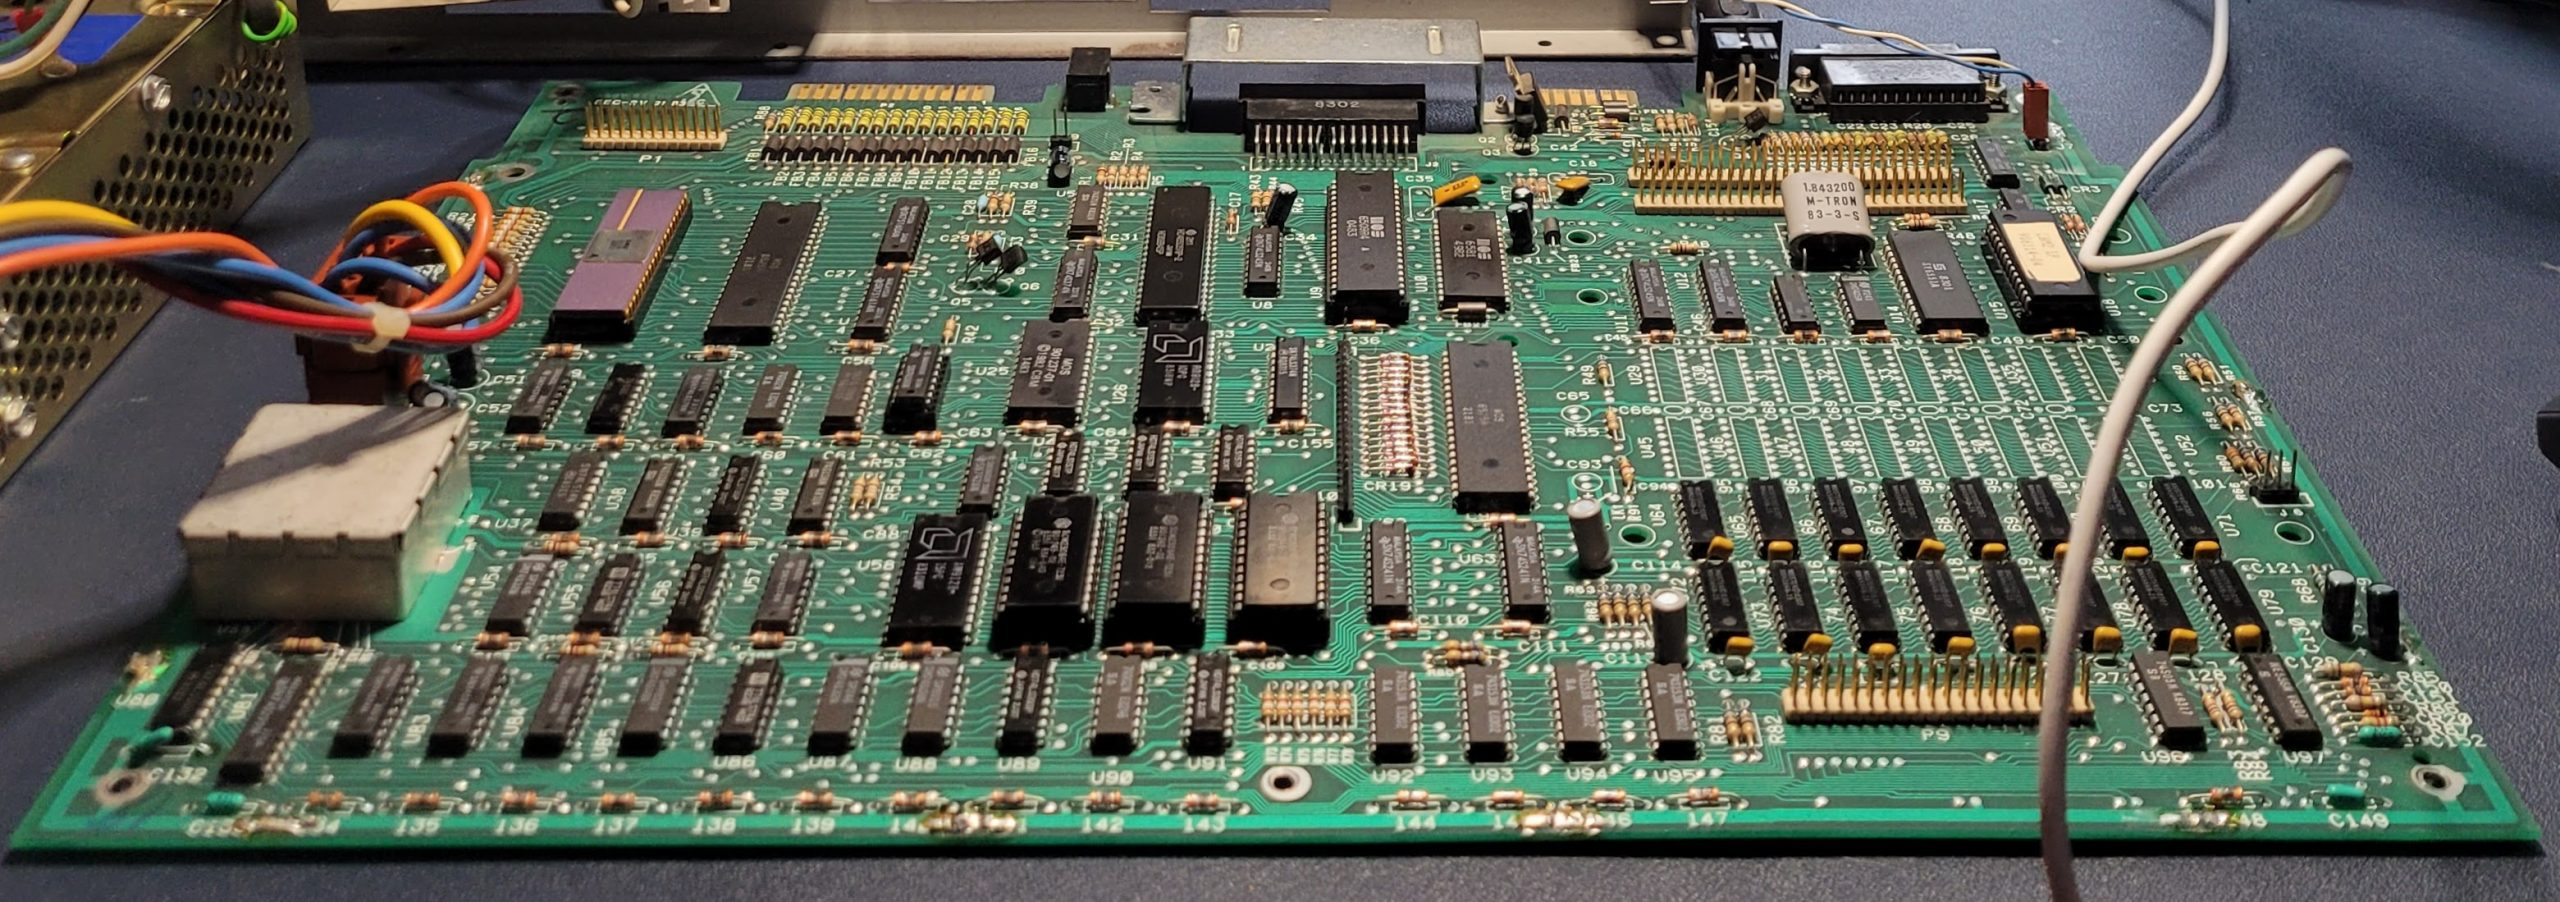 Commodore B128 logic board, angled view from the front of the machine